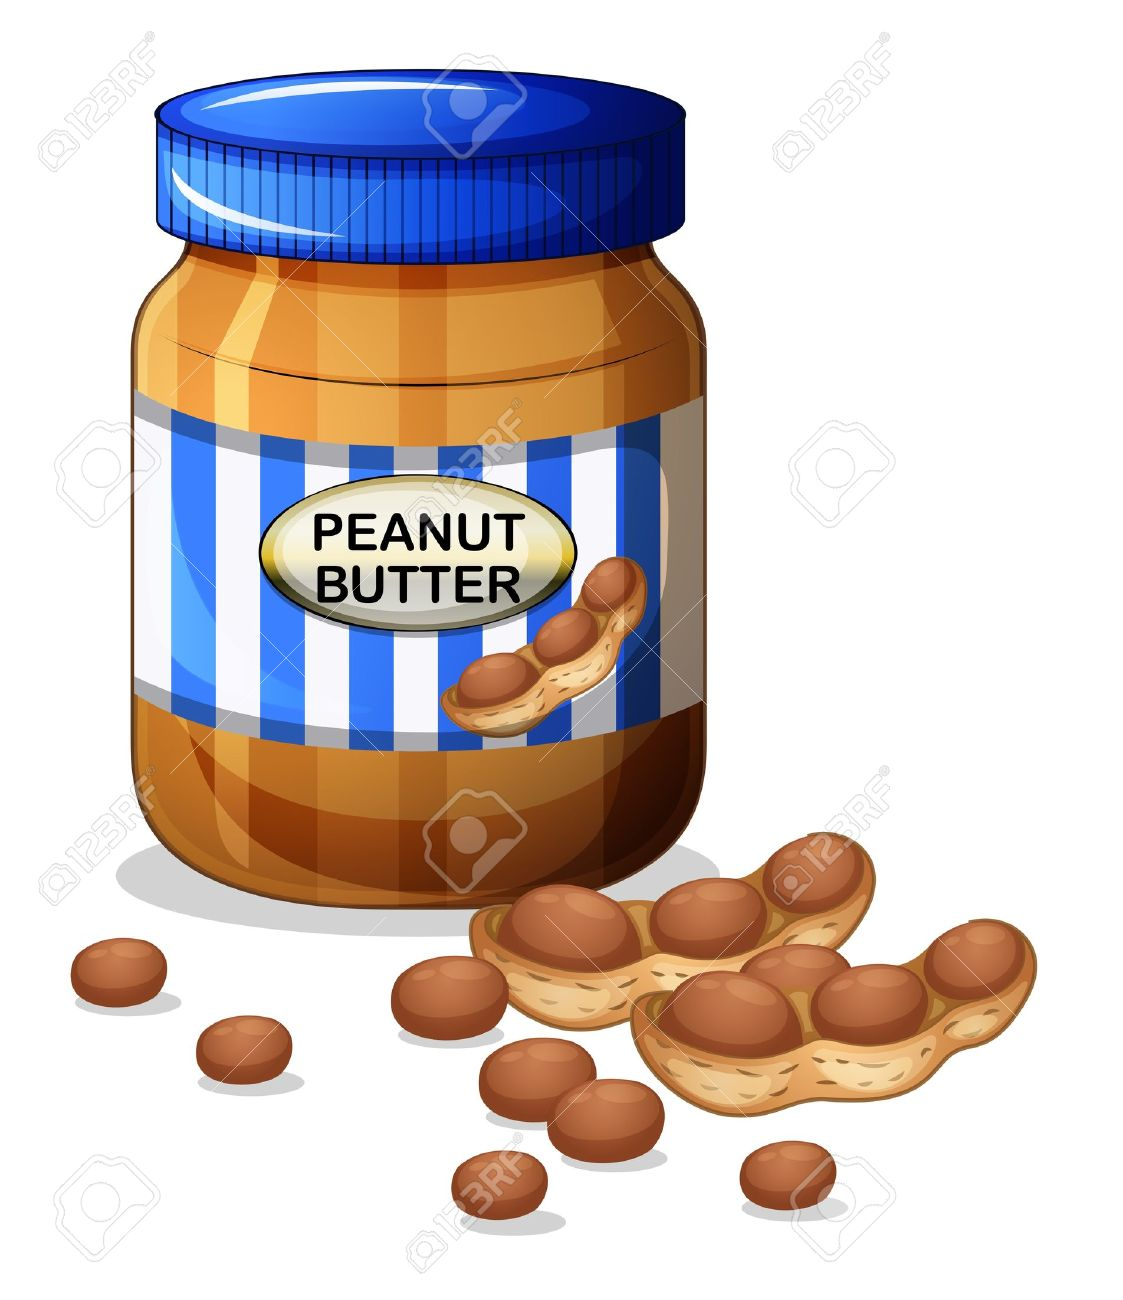 701 Peanut Butter Stock Vector Illustration And Royalty Free.